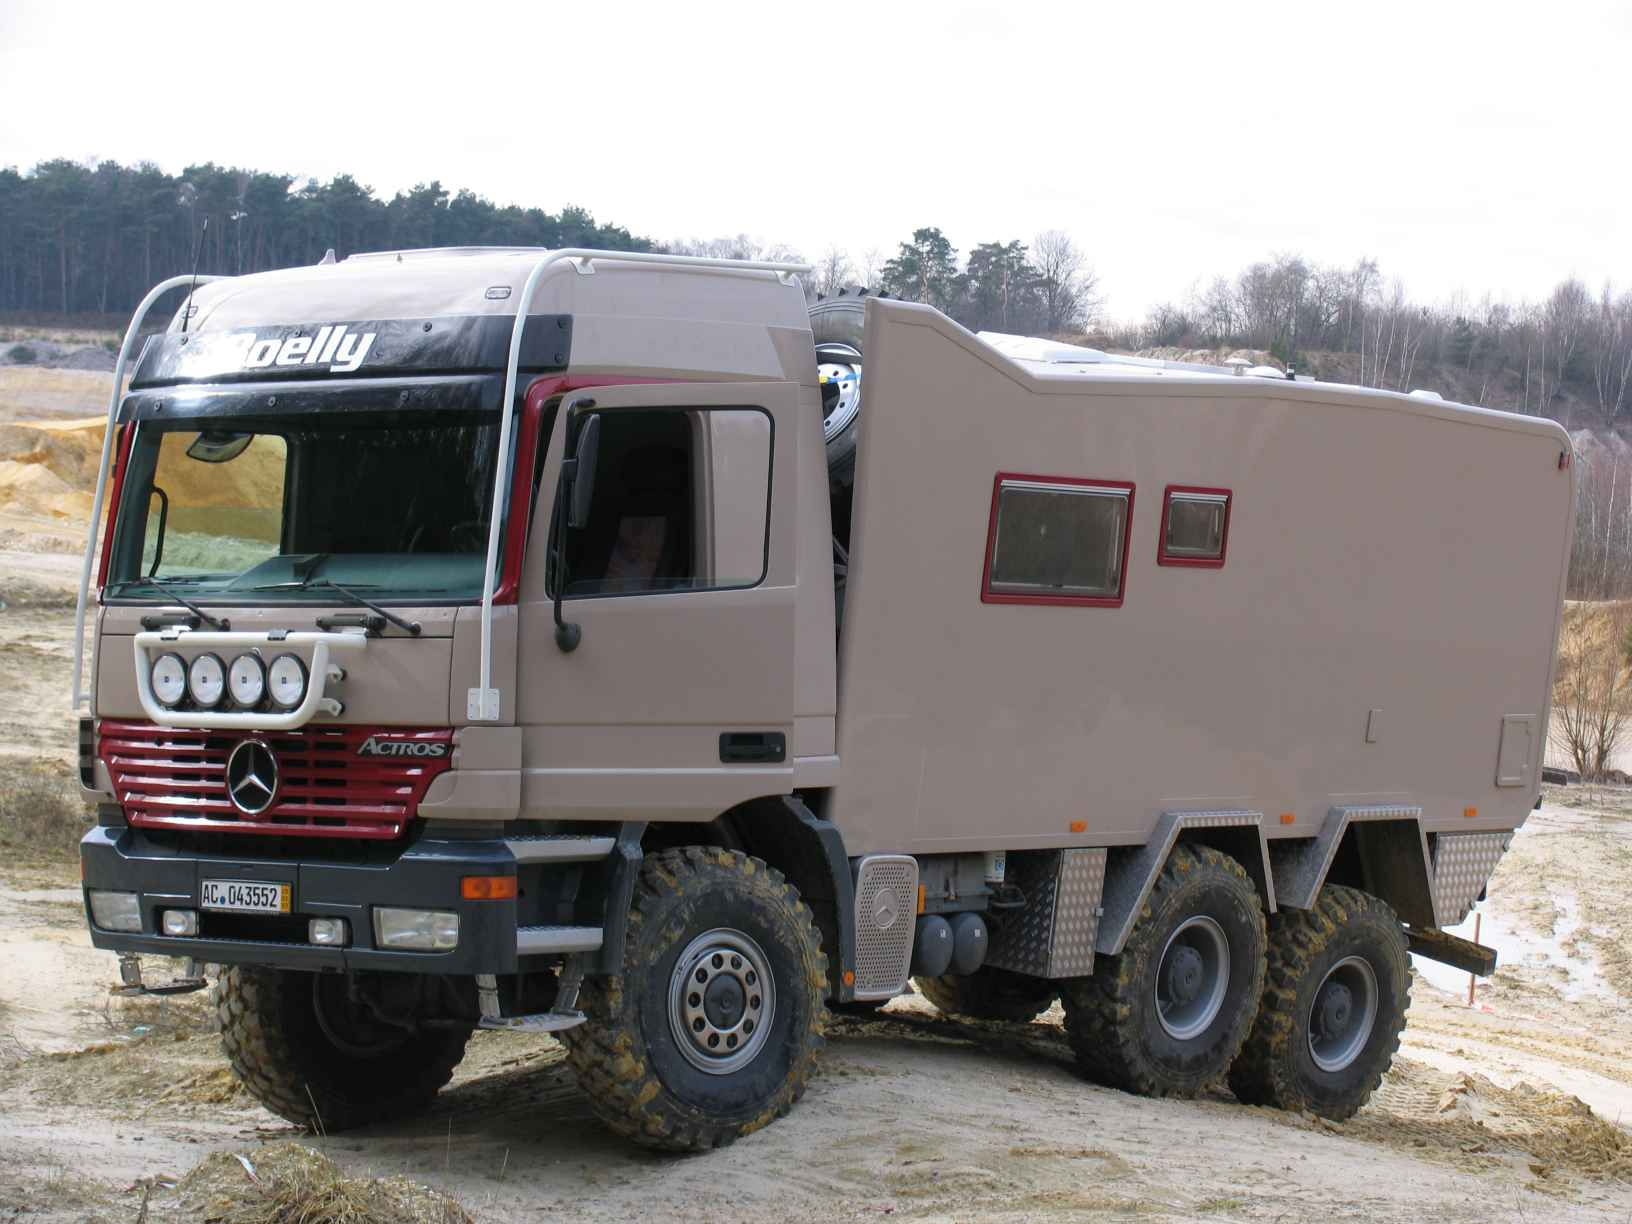 Dutchman Paul Aalmans Knows His Off Road Campers This Is The Third One Hes Built And By Far Largest Starting With A Tired But Capable Mercedes Benz